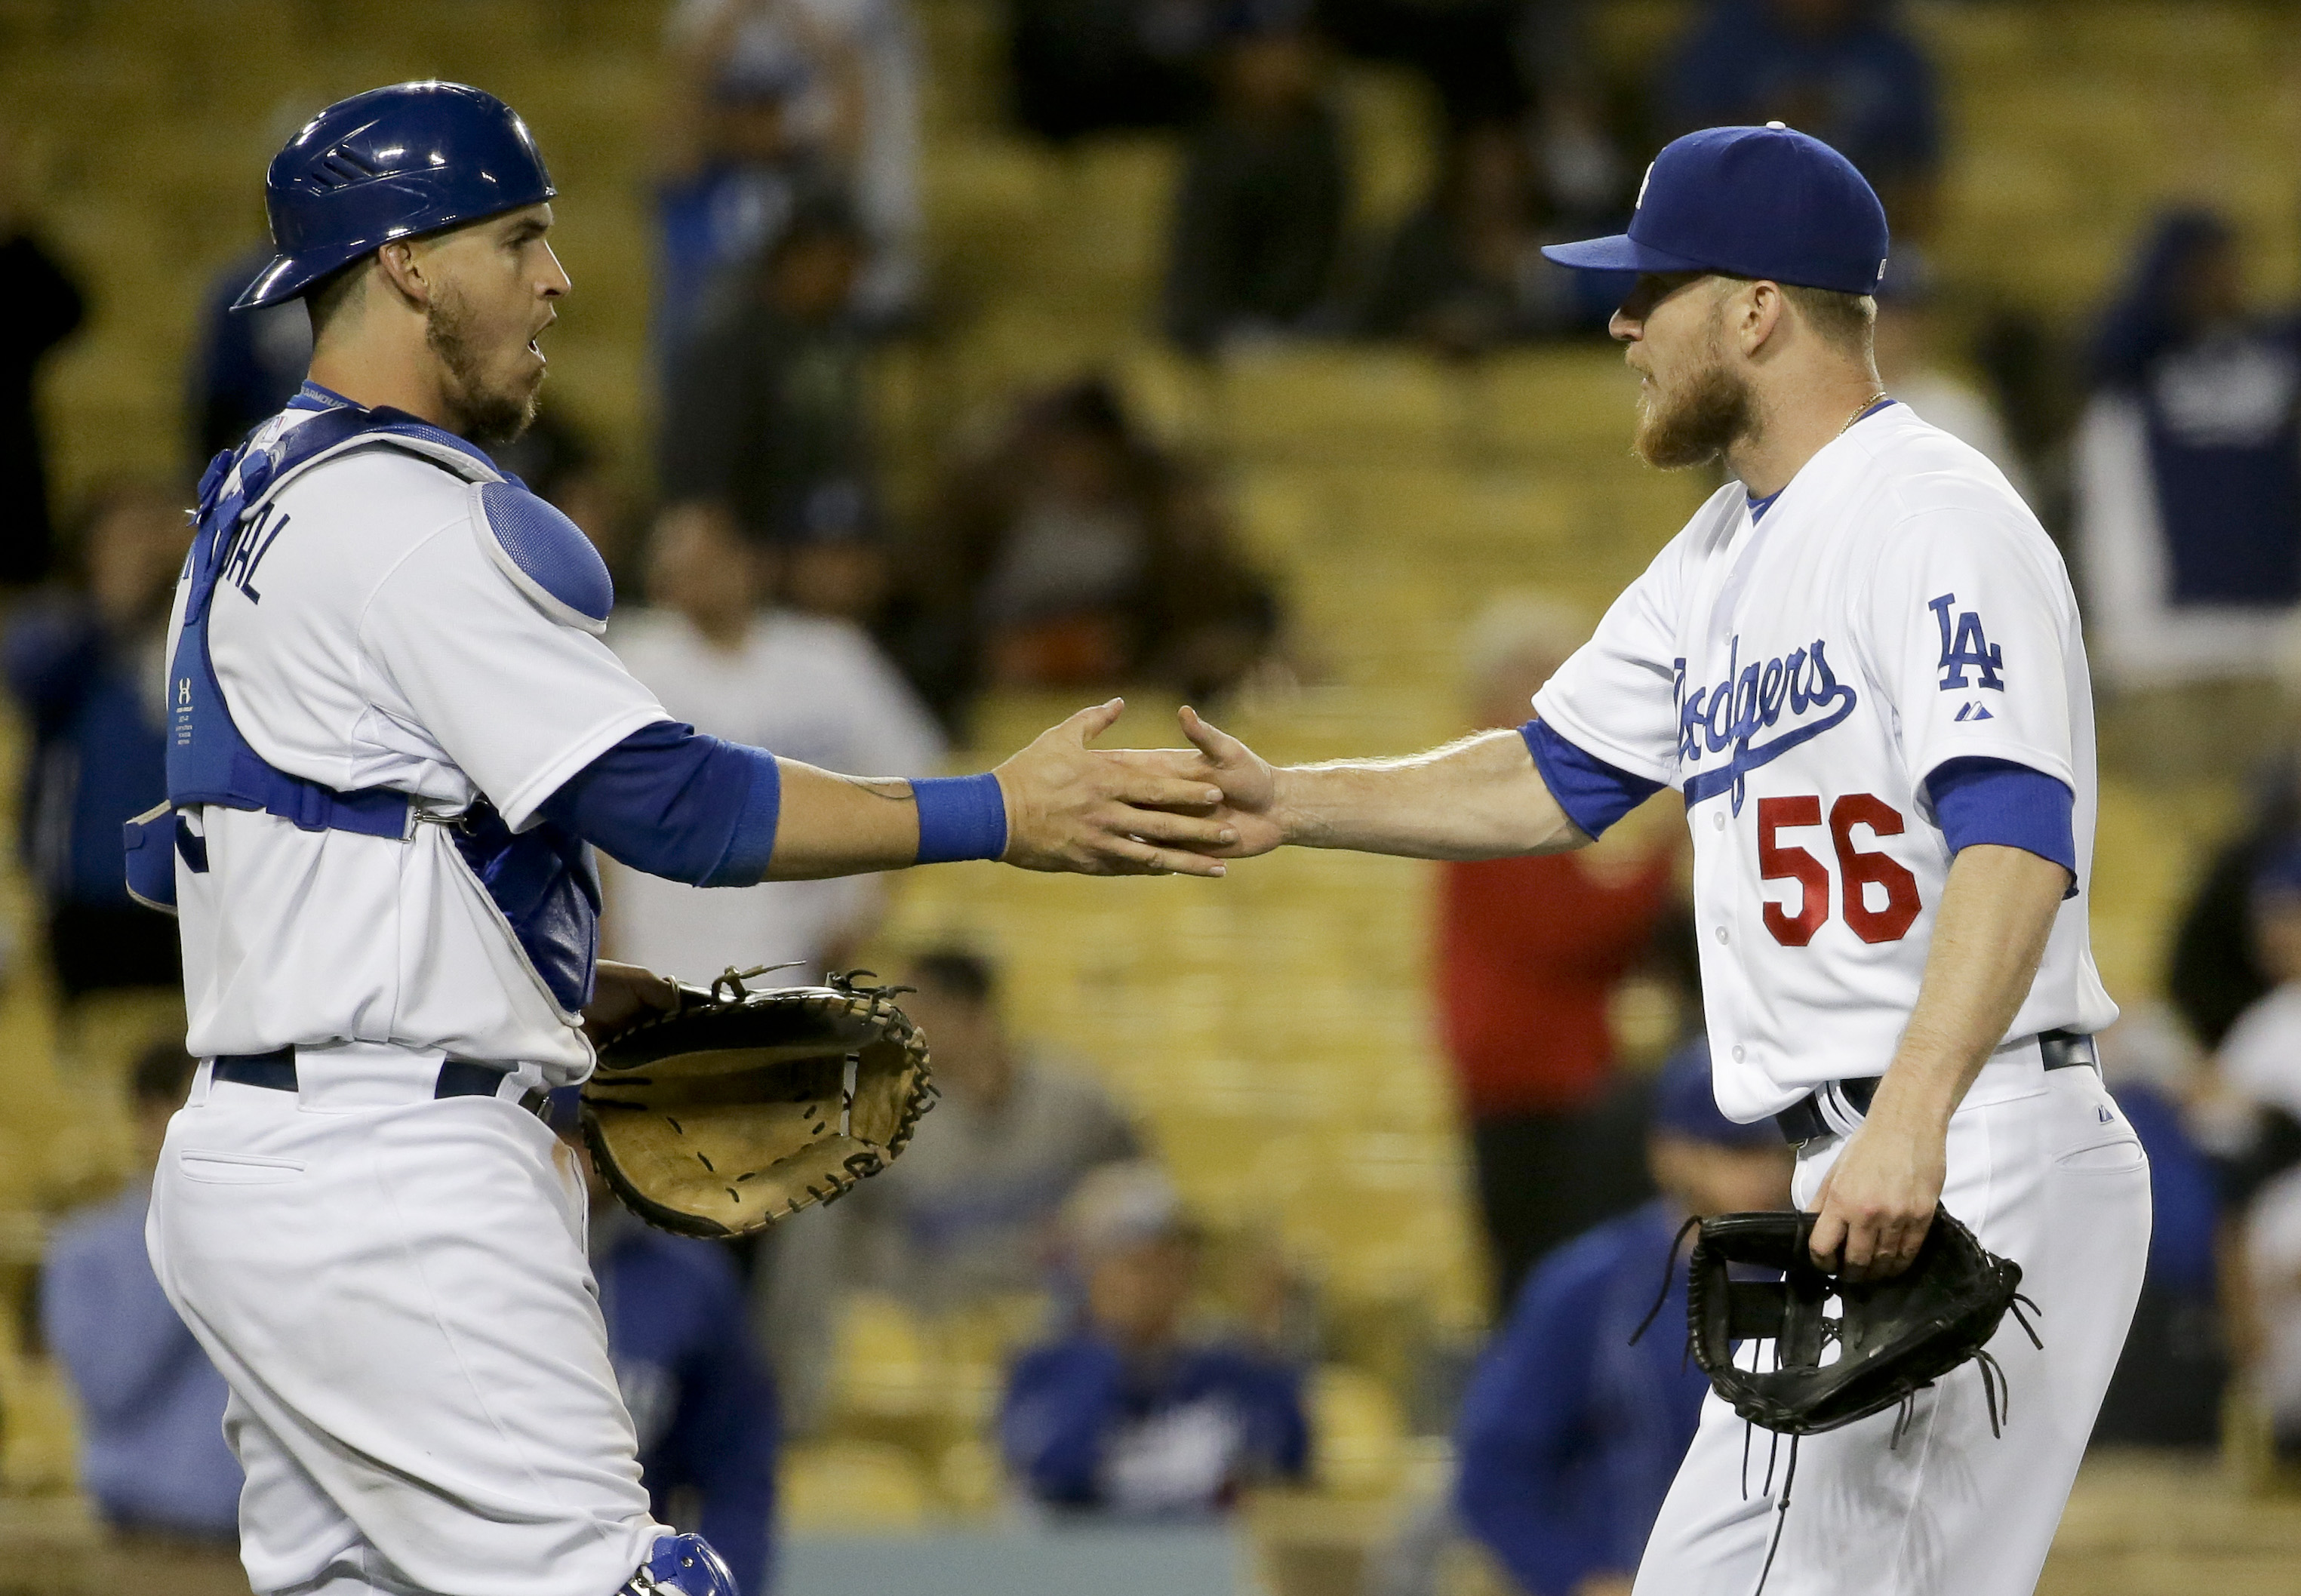 Los Angeles Dodgers catcher Yasmani Grandal, left, and relief pitcher J.P. Howell celebrate after the Dodgers' 11-1 win against the Miami Marlins during a baseball game in Los Angeles, Tuesday, May 12, 2015. (AP Photo/Chris Carlson)